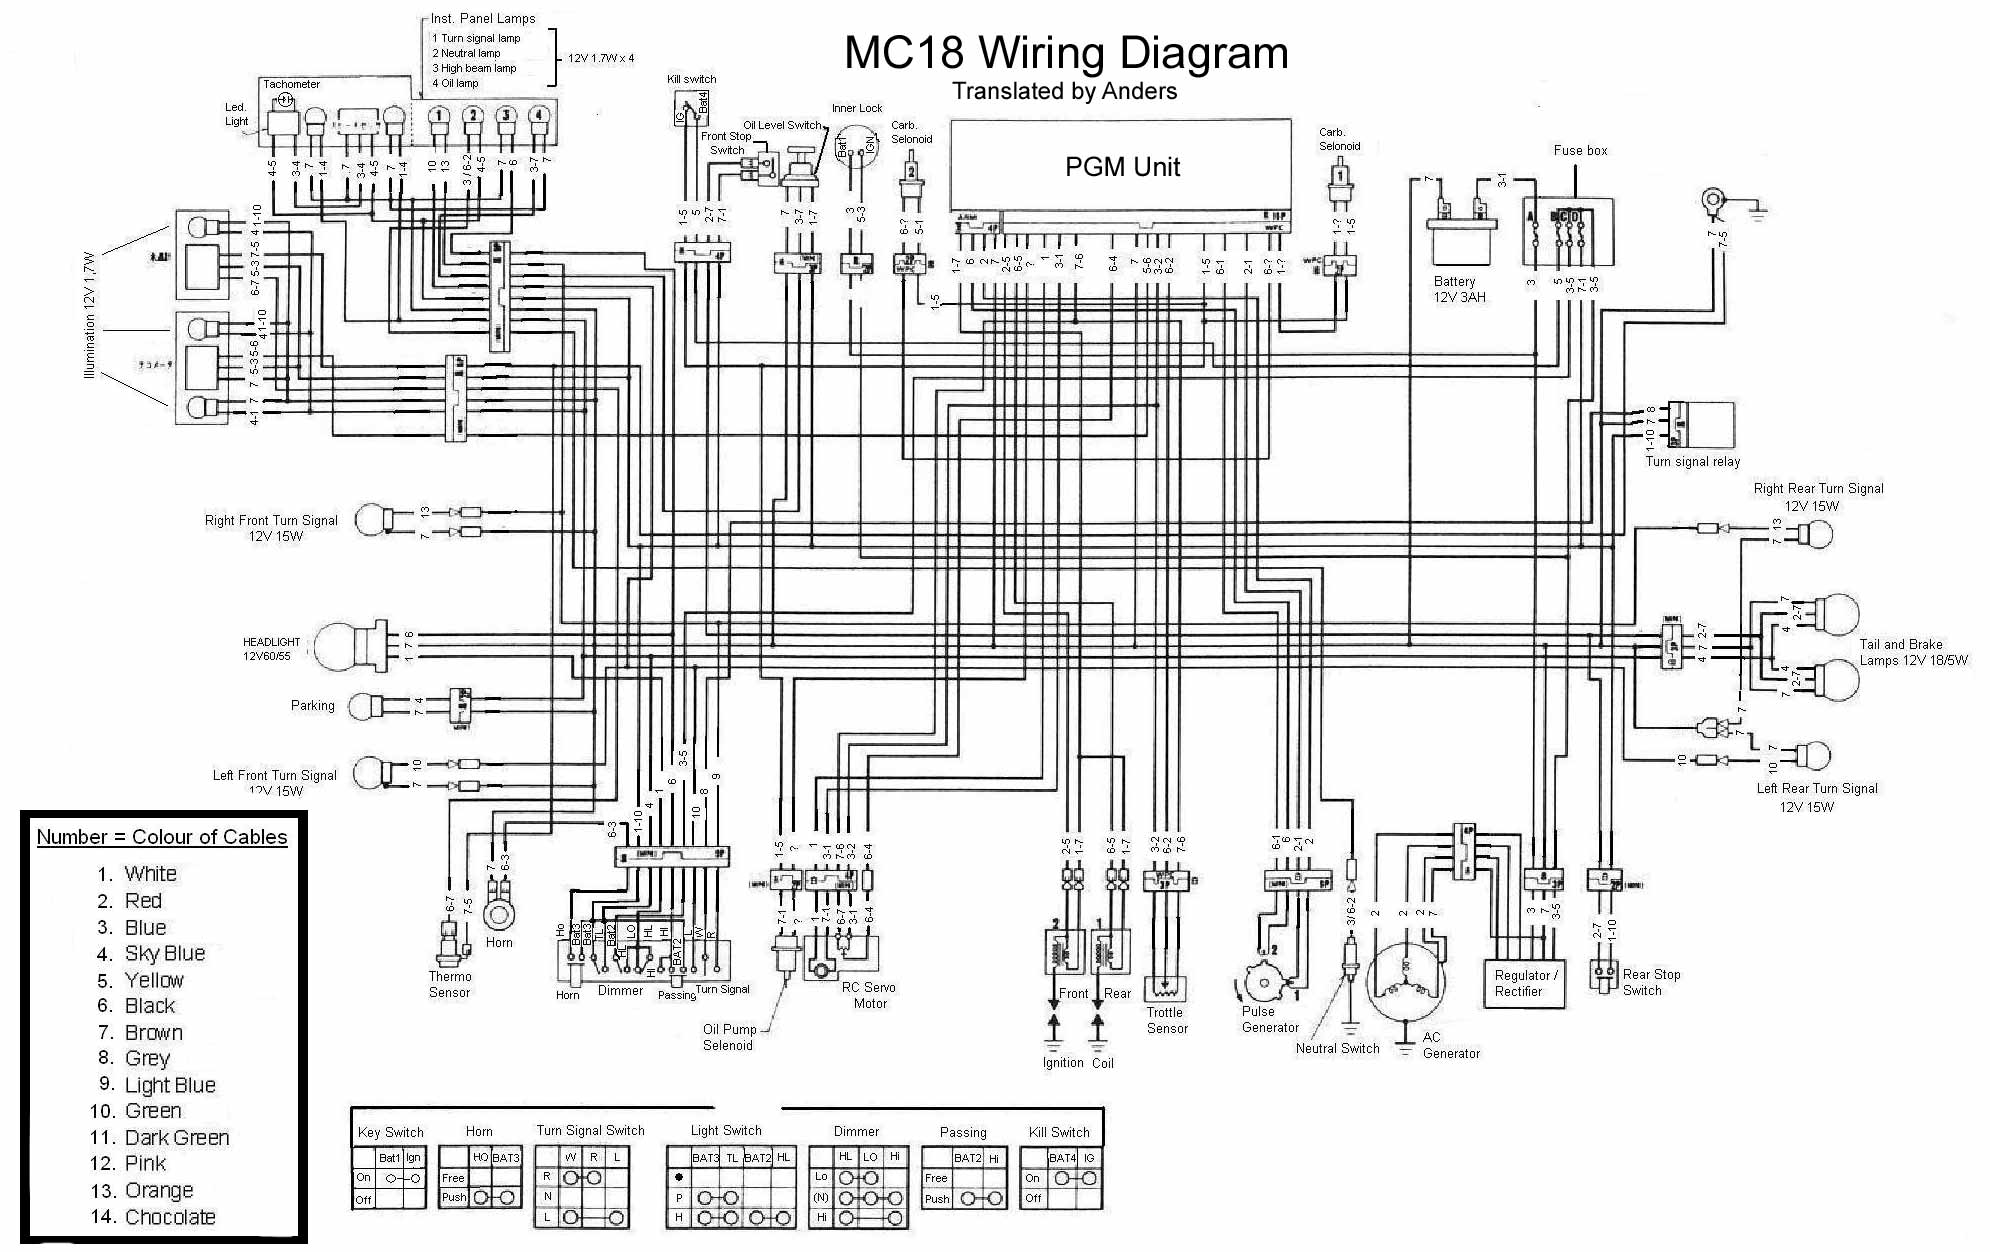 MC18 Wiring Diagram